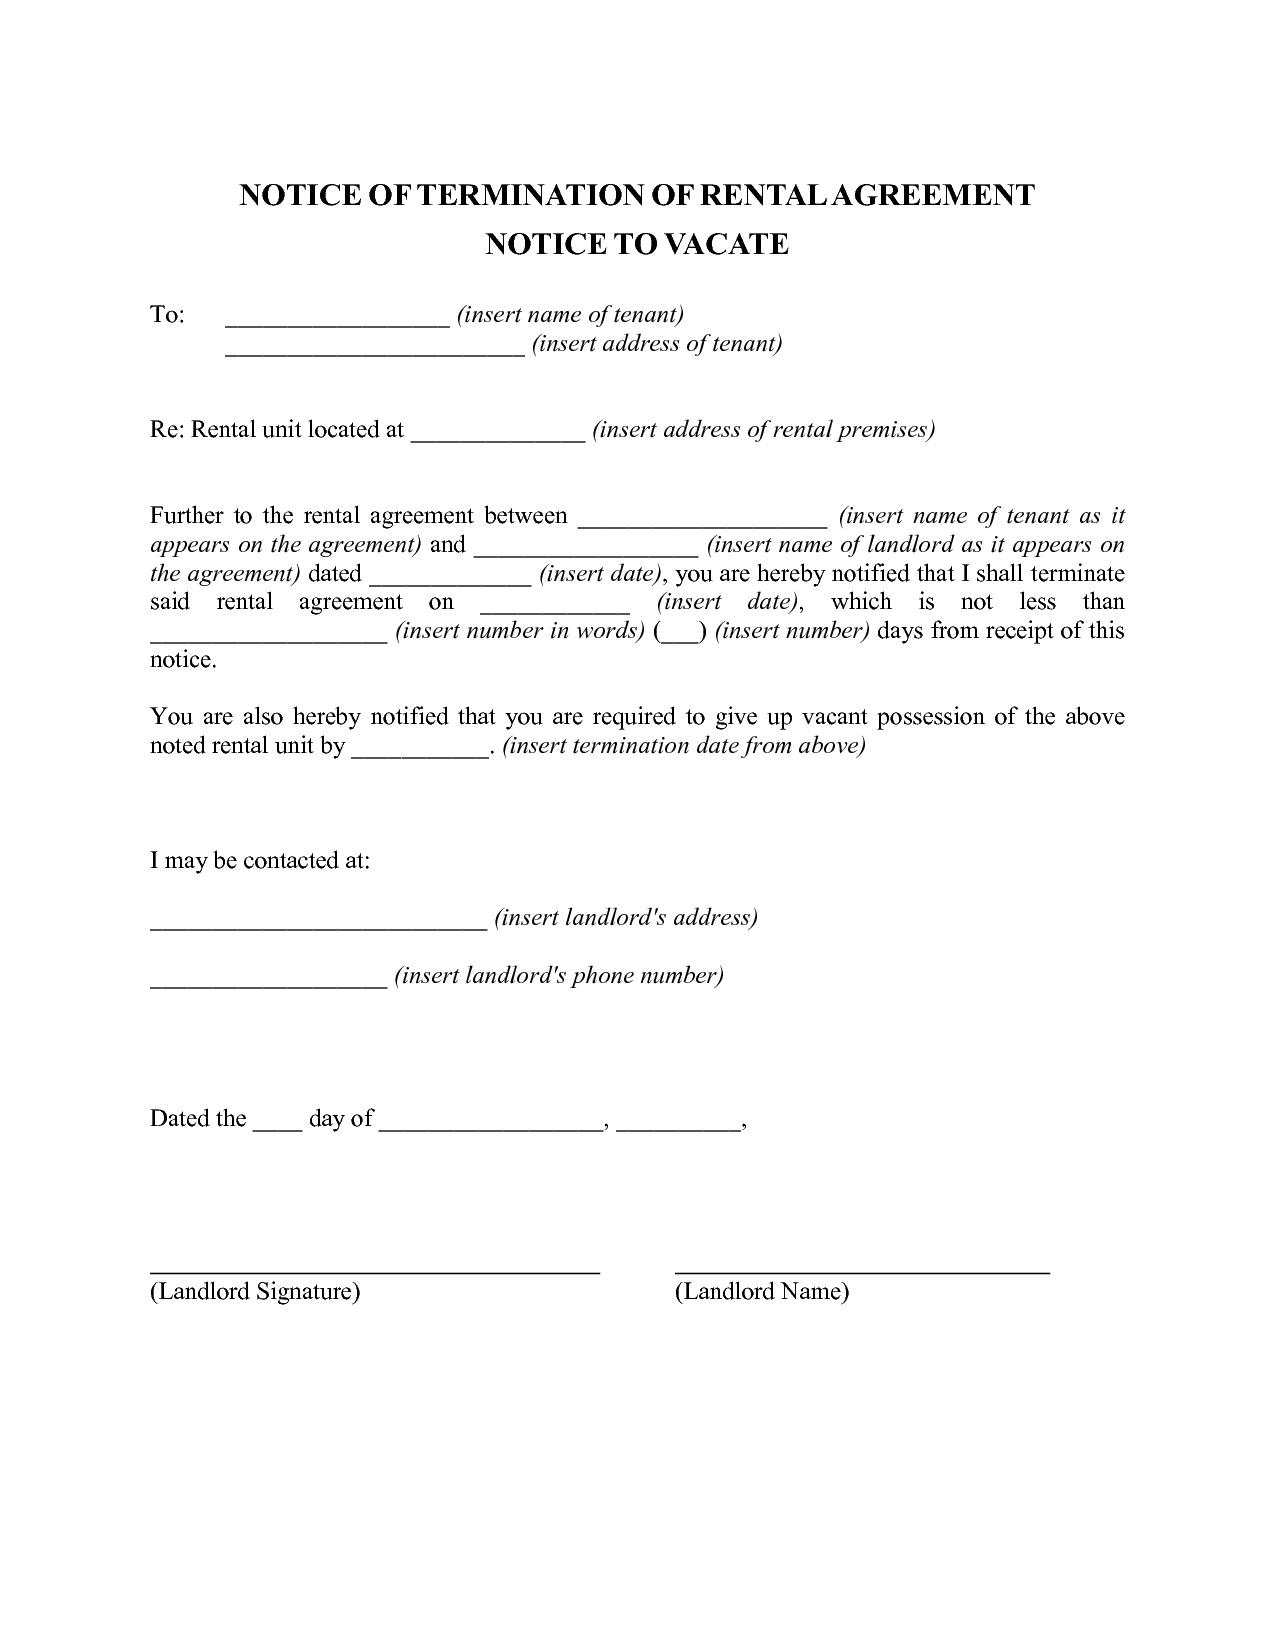 Notice Letter to Tenant From Landlord Template - Tenancy Resignation Letter Letter format formal Sample